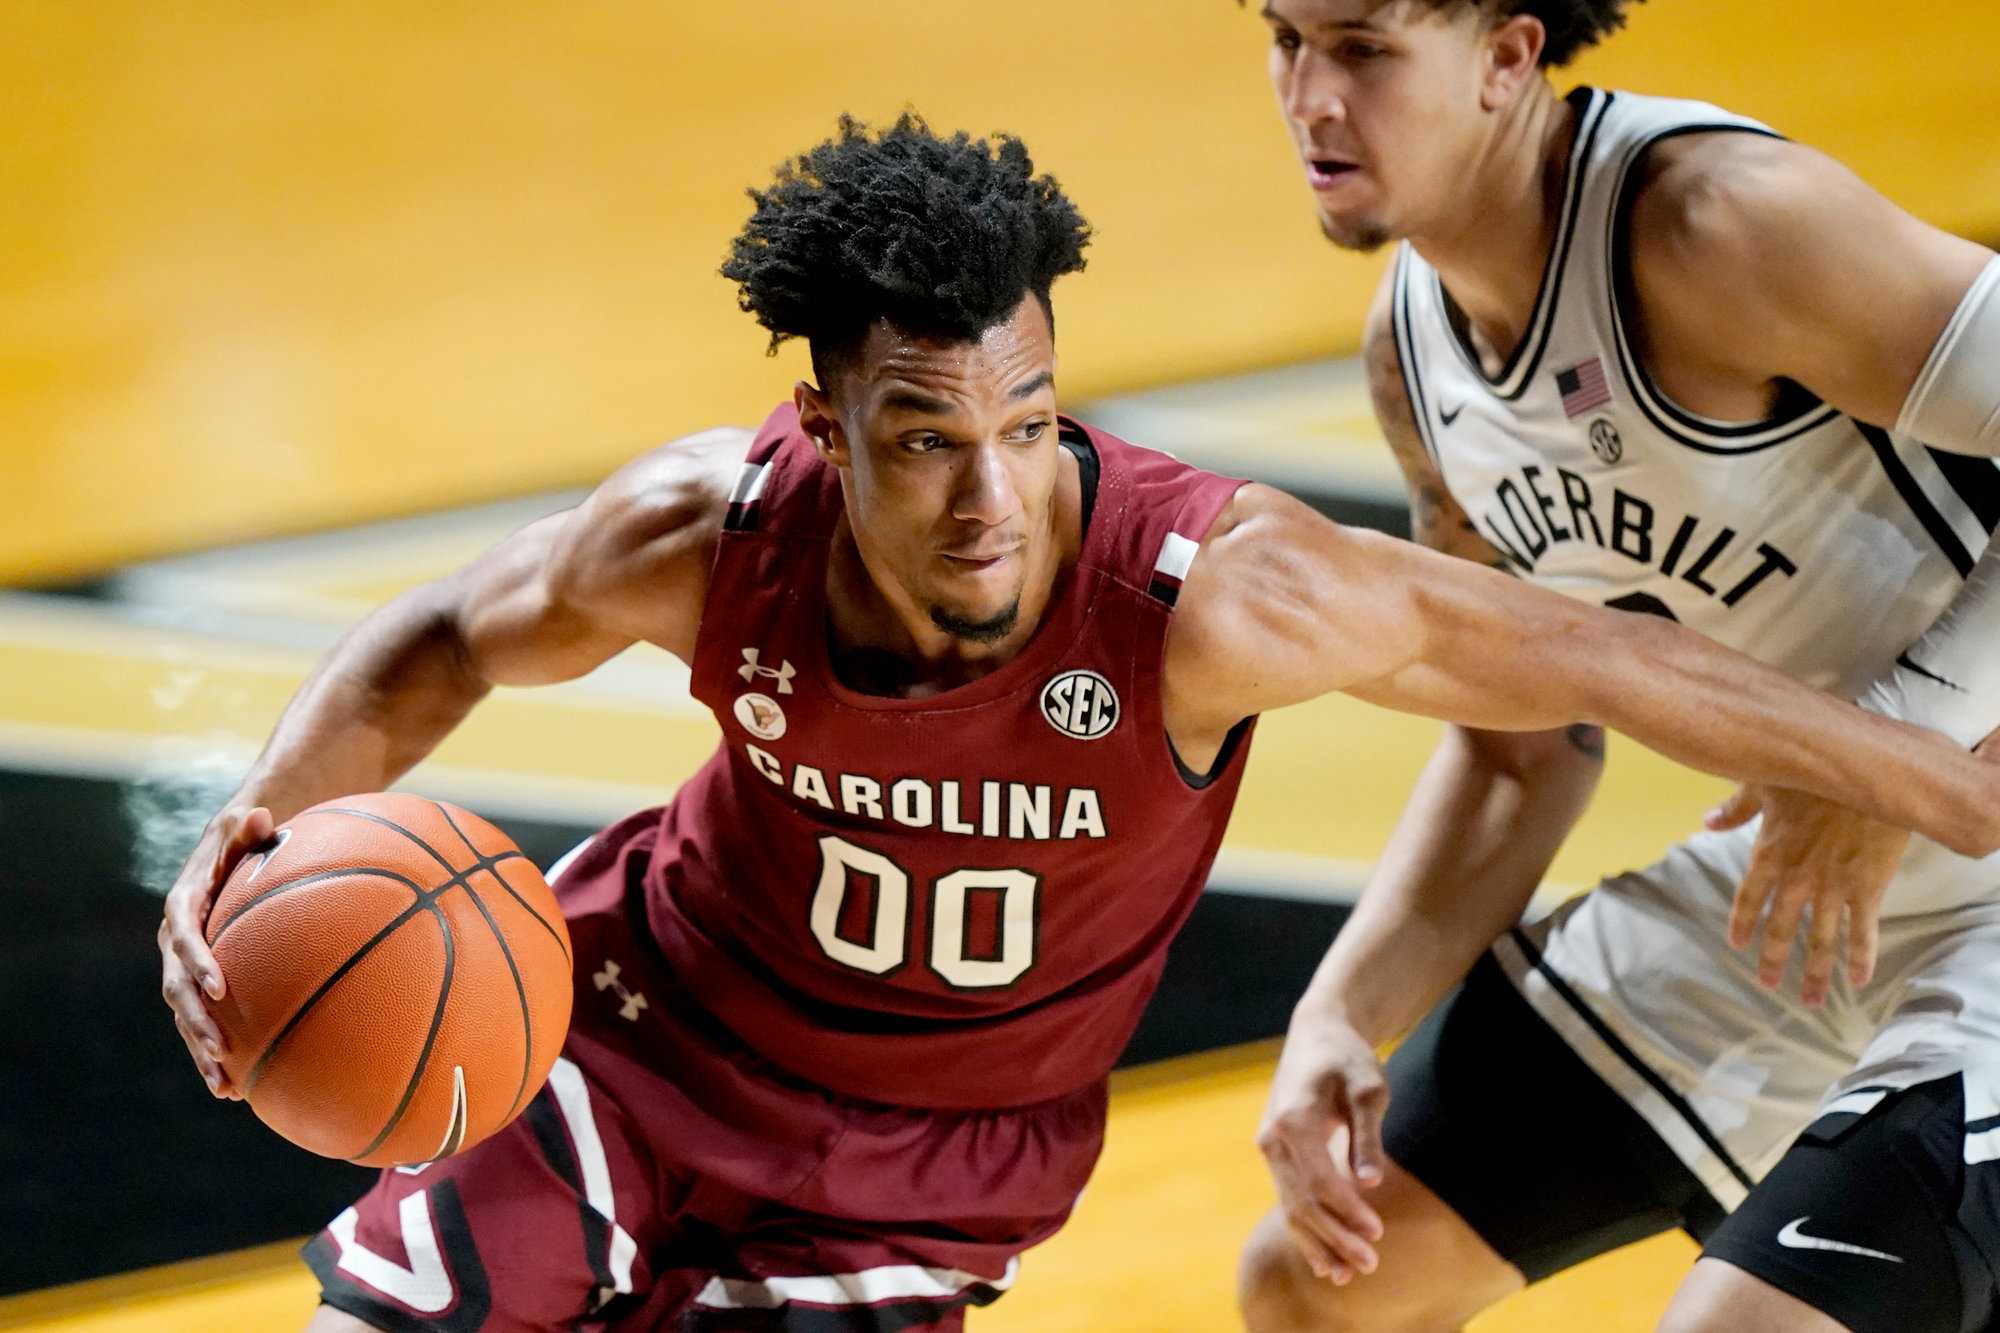 South Carolina guard AJ Lawson scored 22 points in the Gamecocks' 81-74 loss to Ole Miss on Saturday.